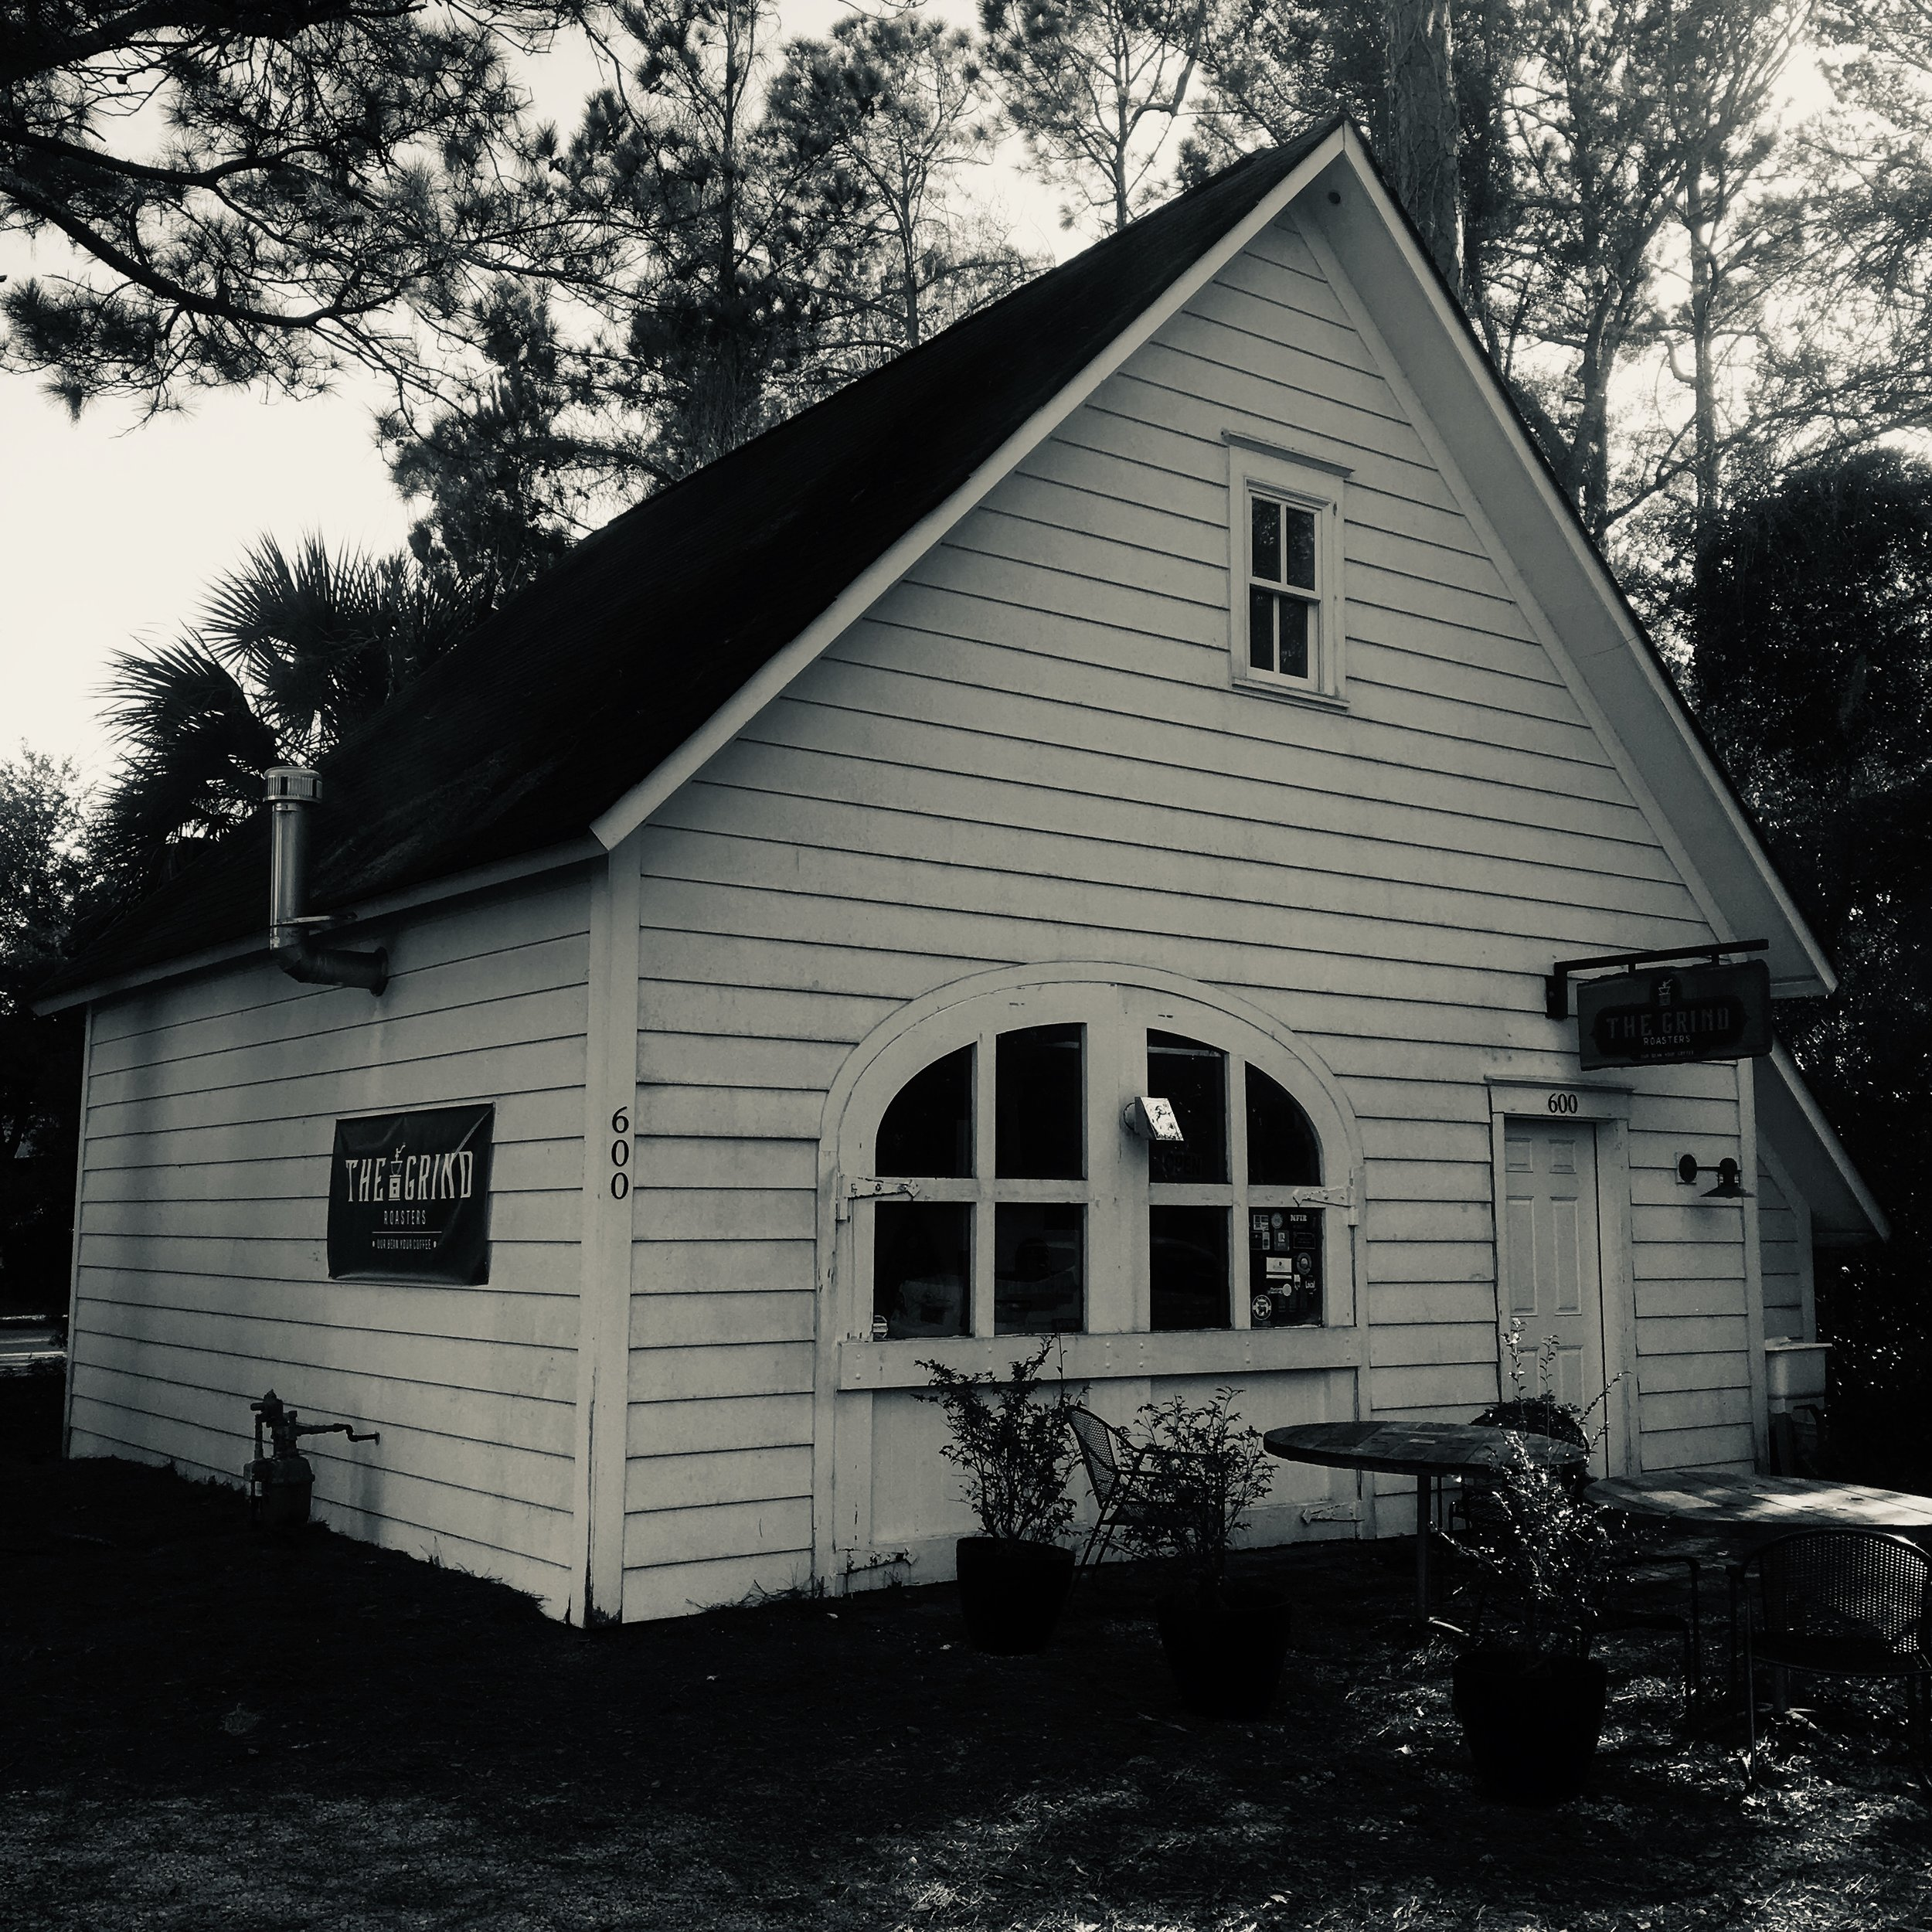 Humble beginnings. our first shop, a historic carriage house